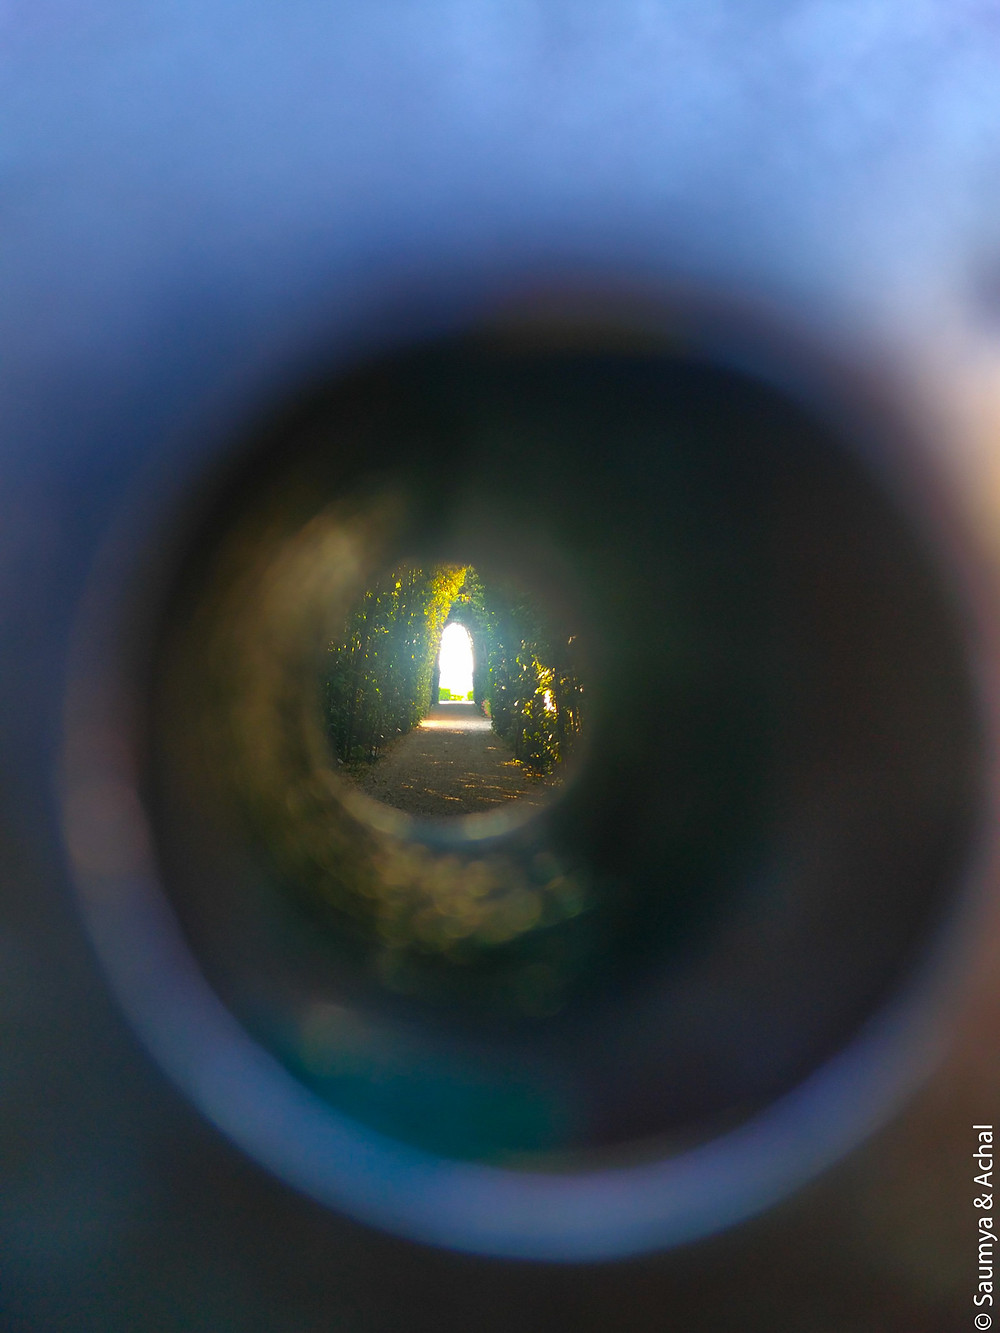 Keyhole @ Aventine Hill, Rome